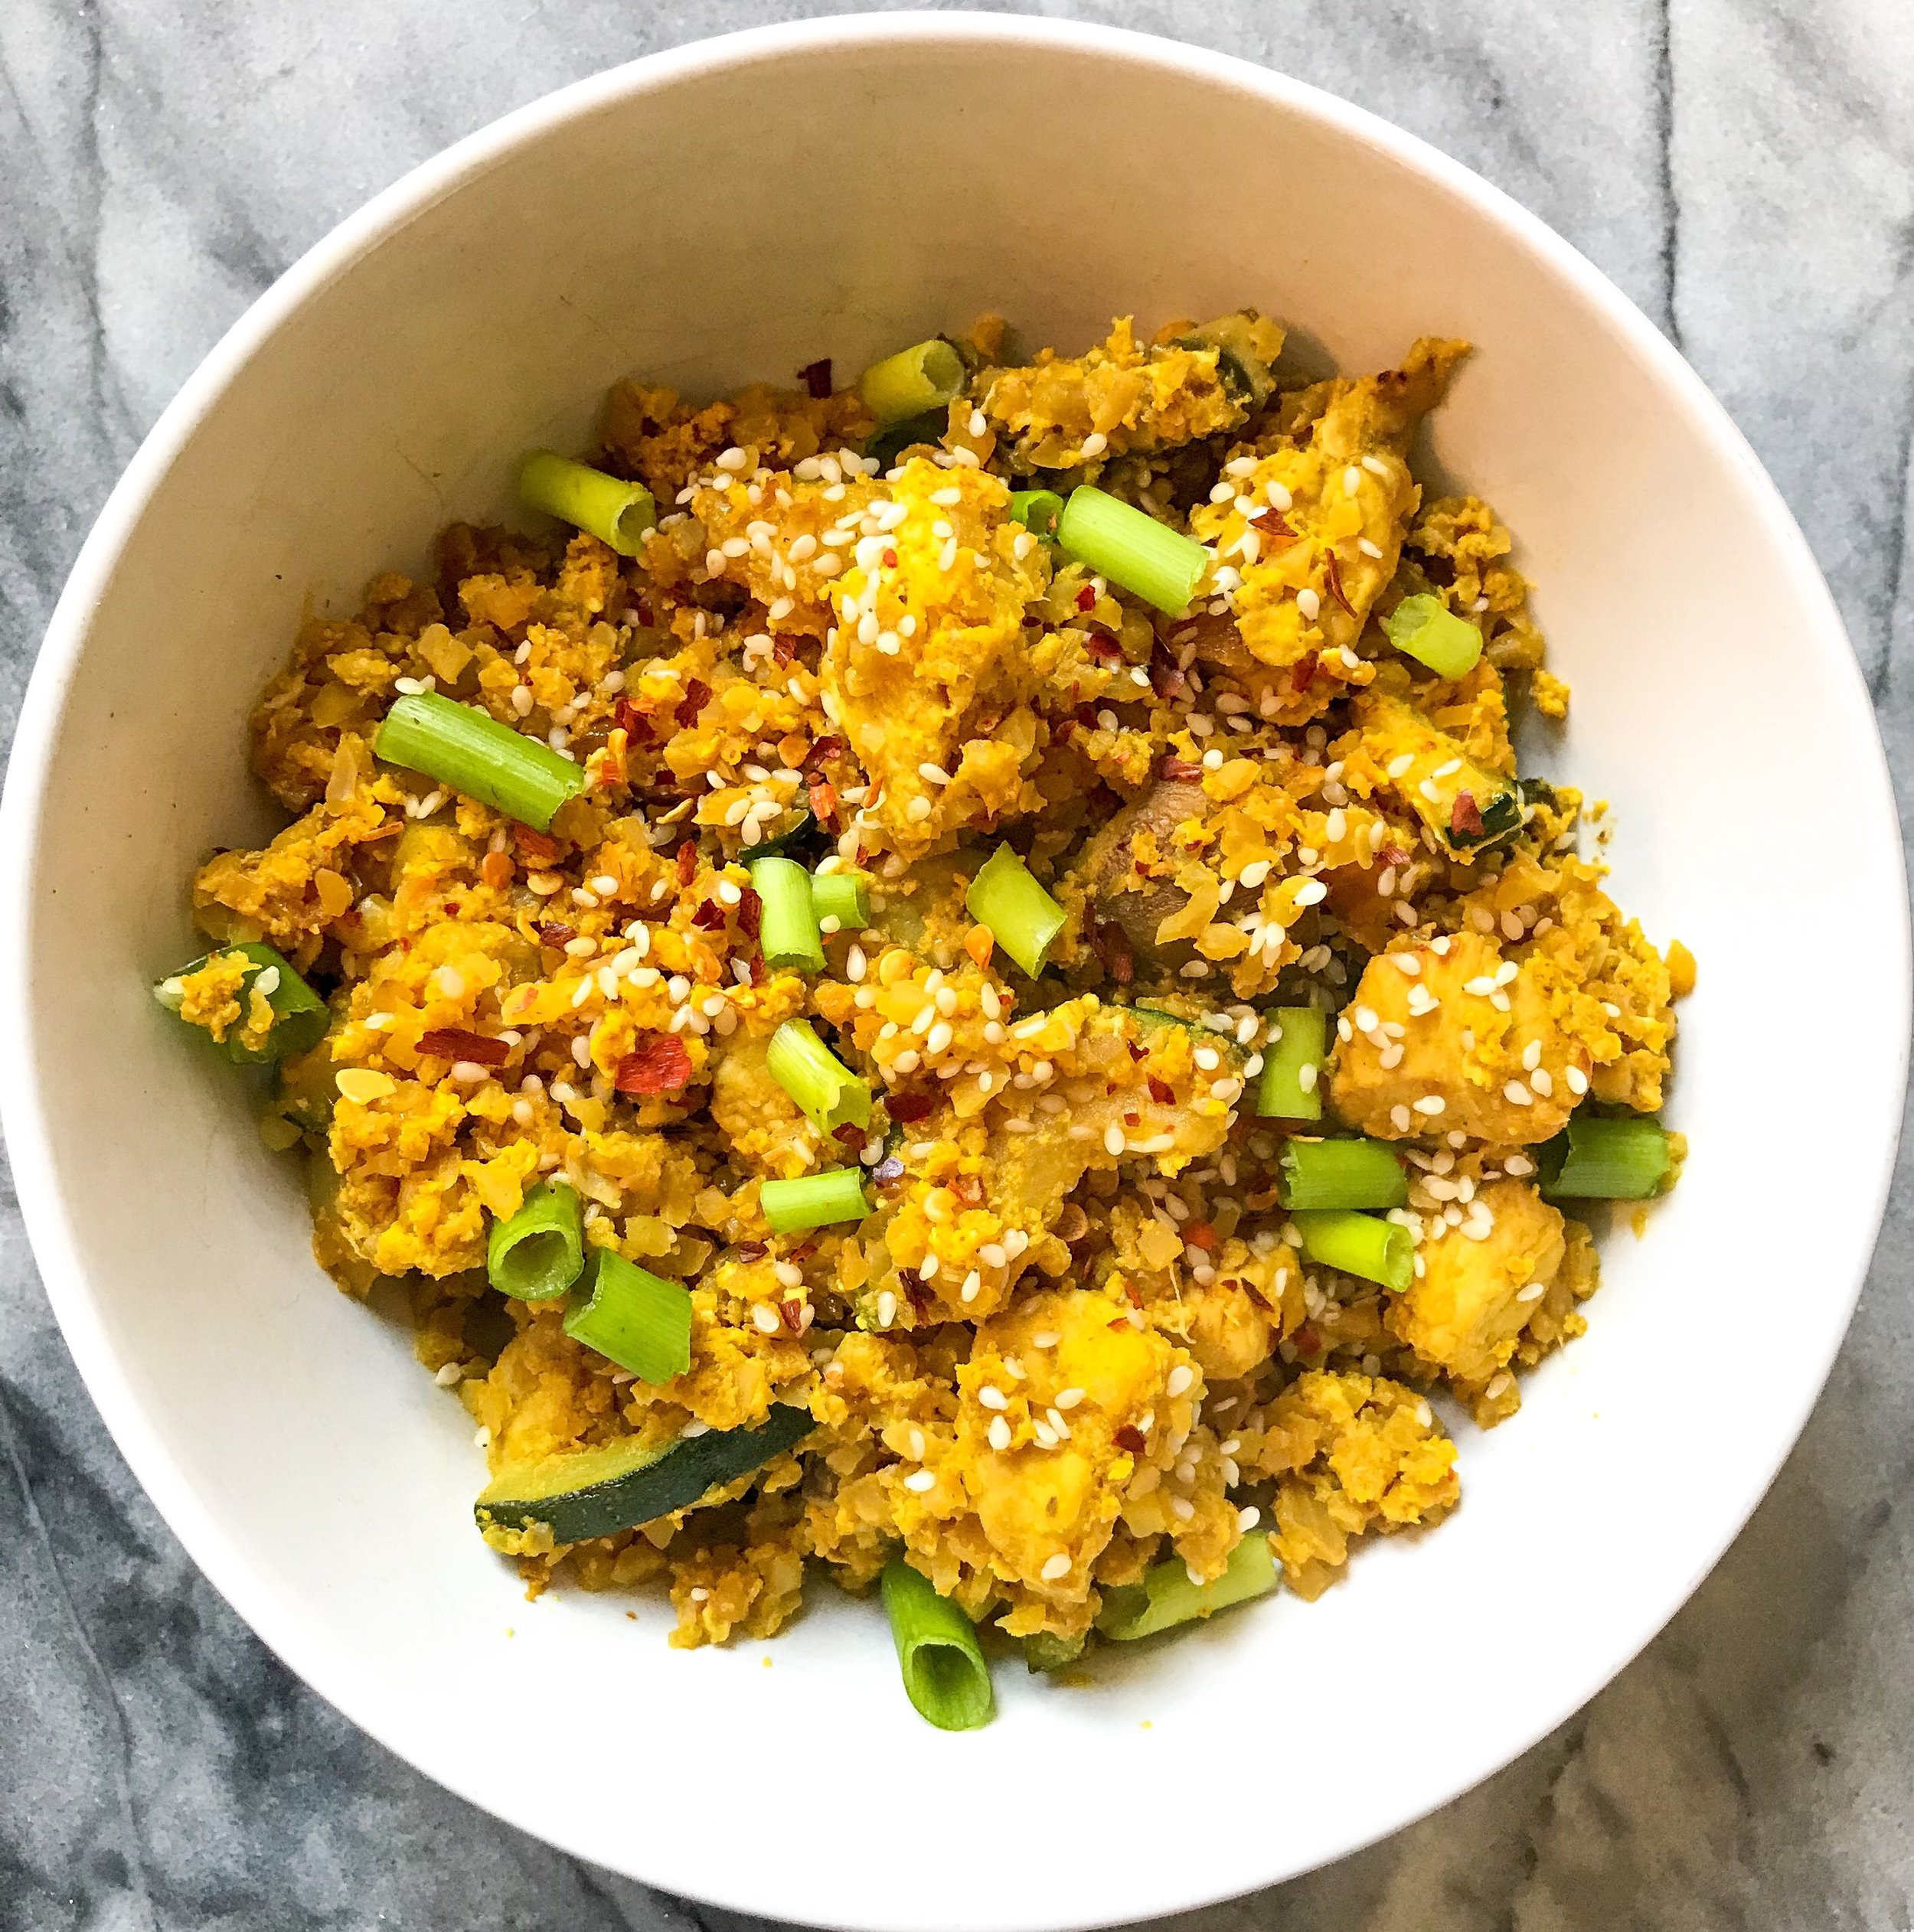 Veggie + Chicken + Egg Cauliflower Fried Rice